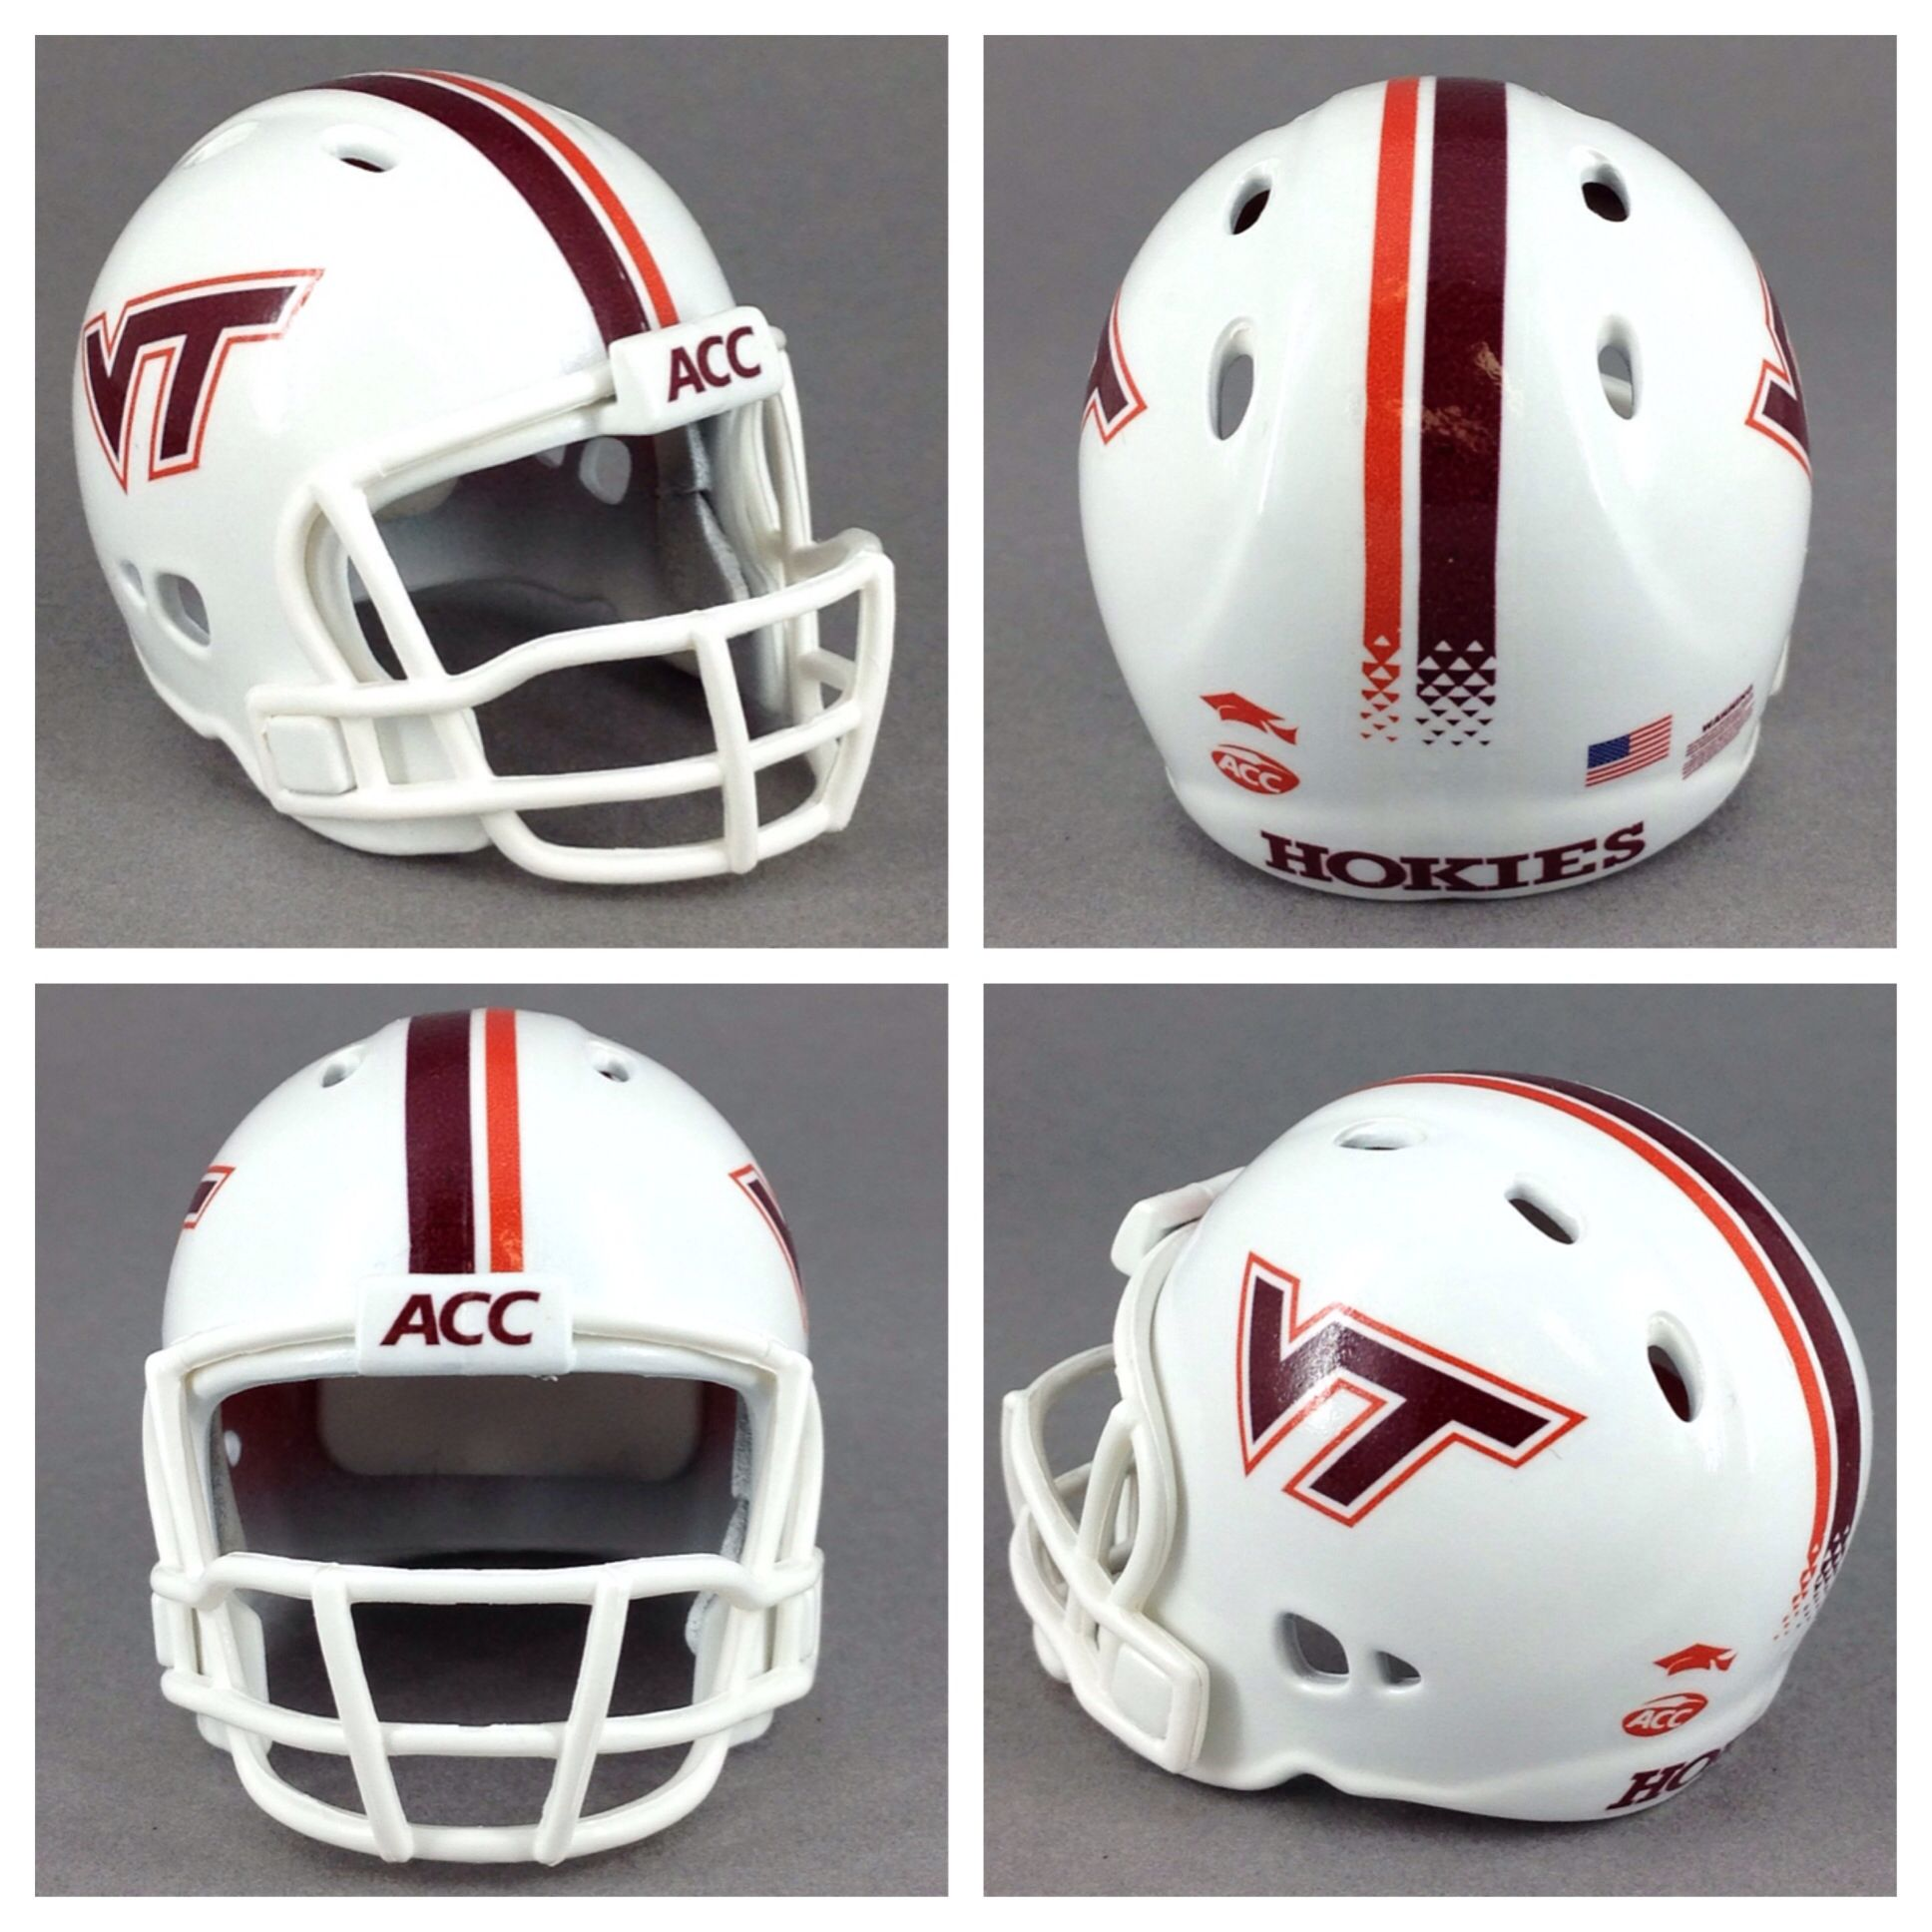 Custommade Virginia Tech 2009 Pro Compat Pocket Pro